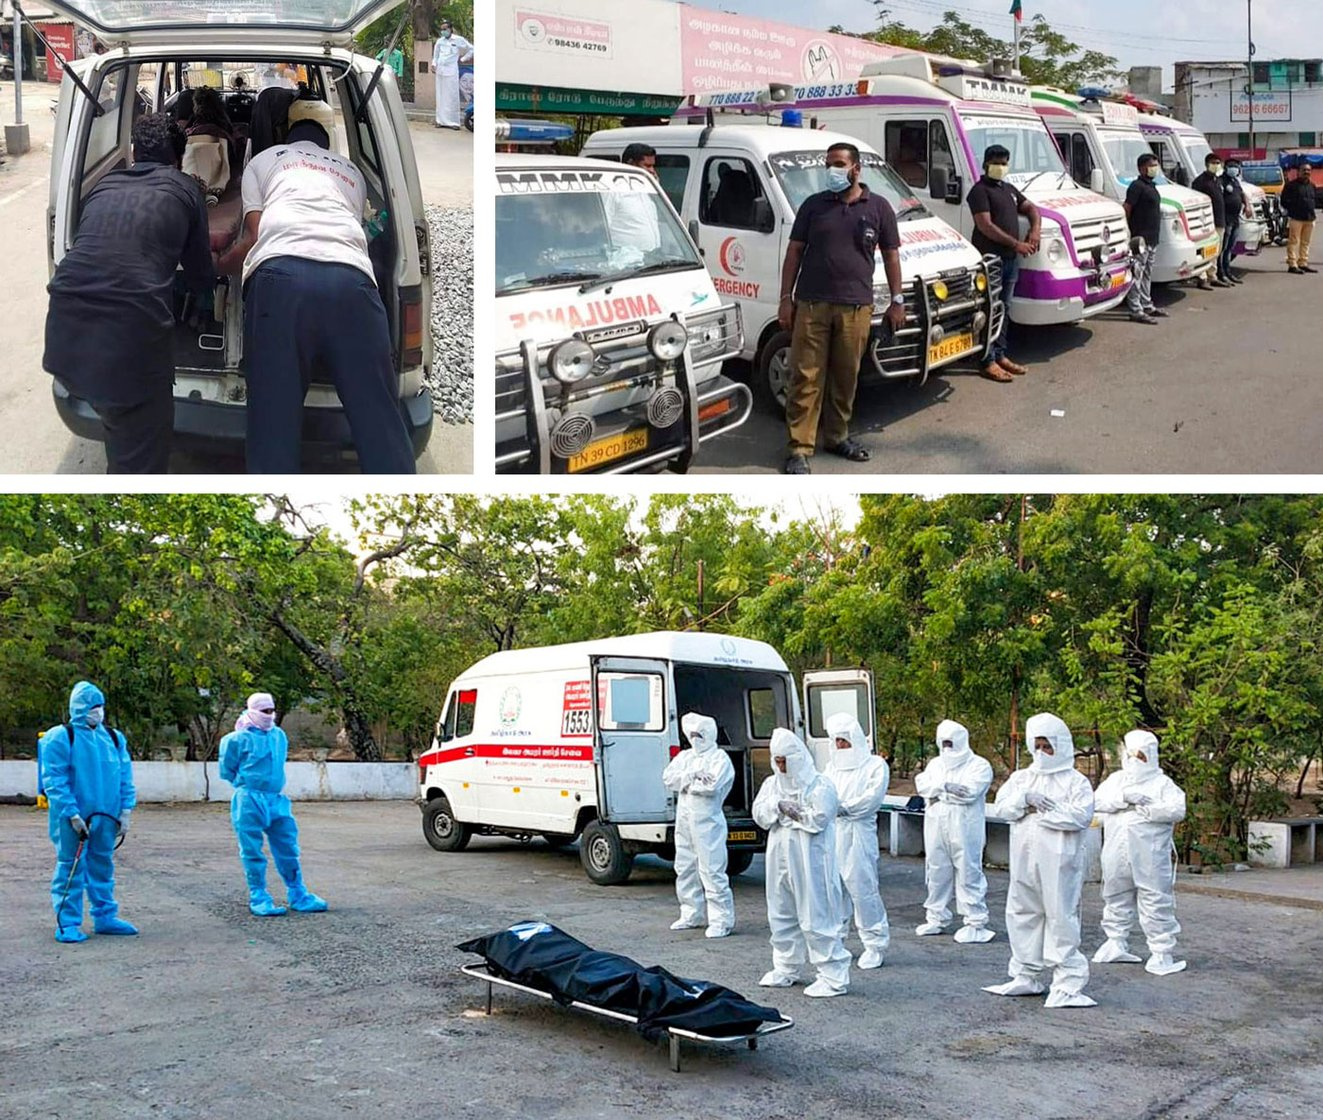 Top left: Two volunteers place a body in their vehicle. Top right: TMMK volunteers stand beside their ambulance vans, readying for the day's activity. And volunteers in full PPE stand in respect after unloading a body at a burial ground